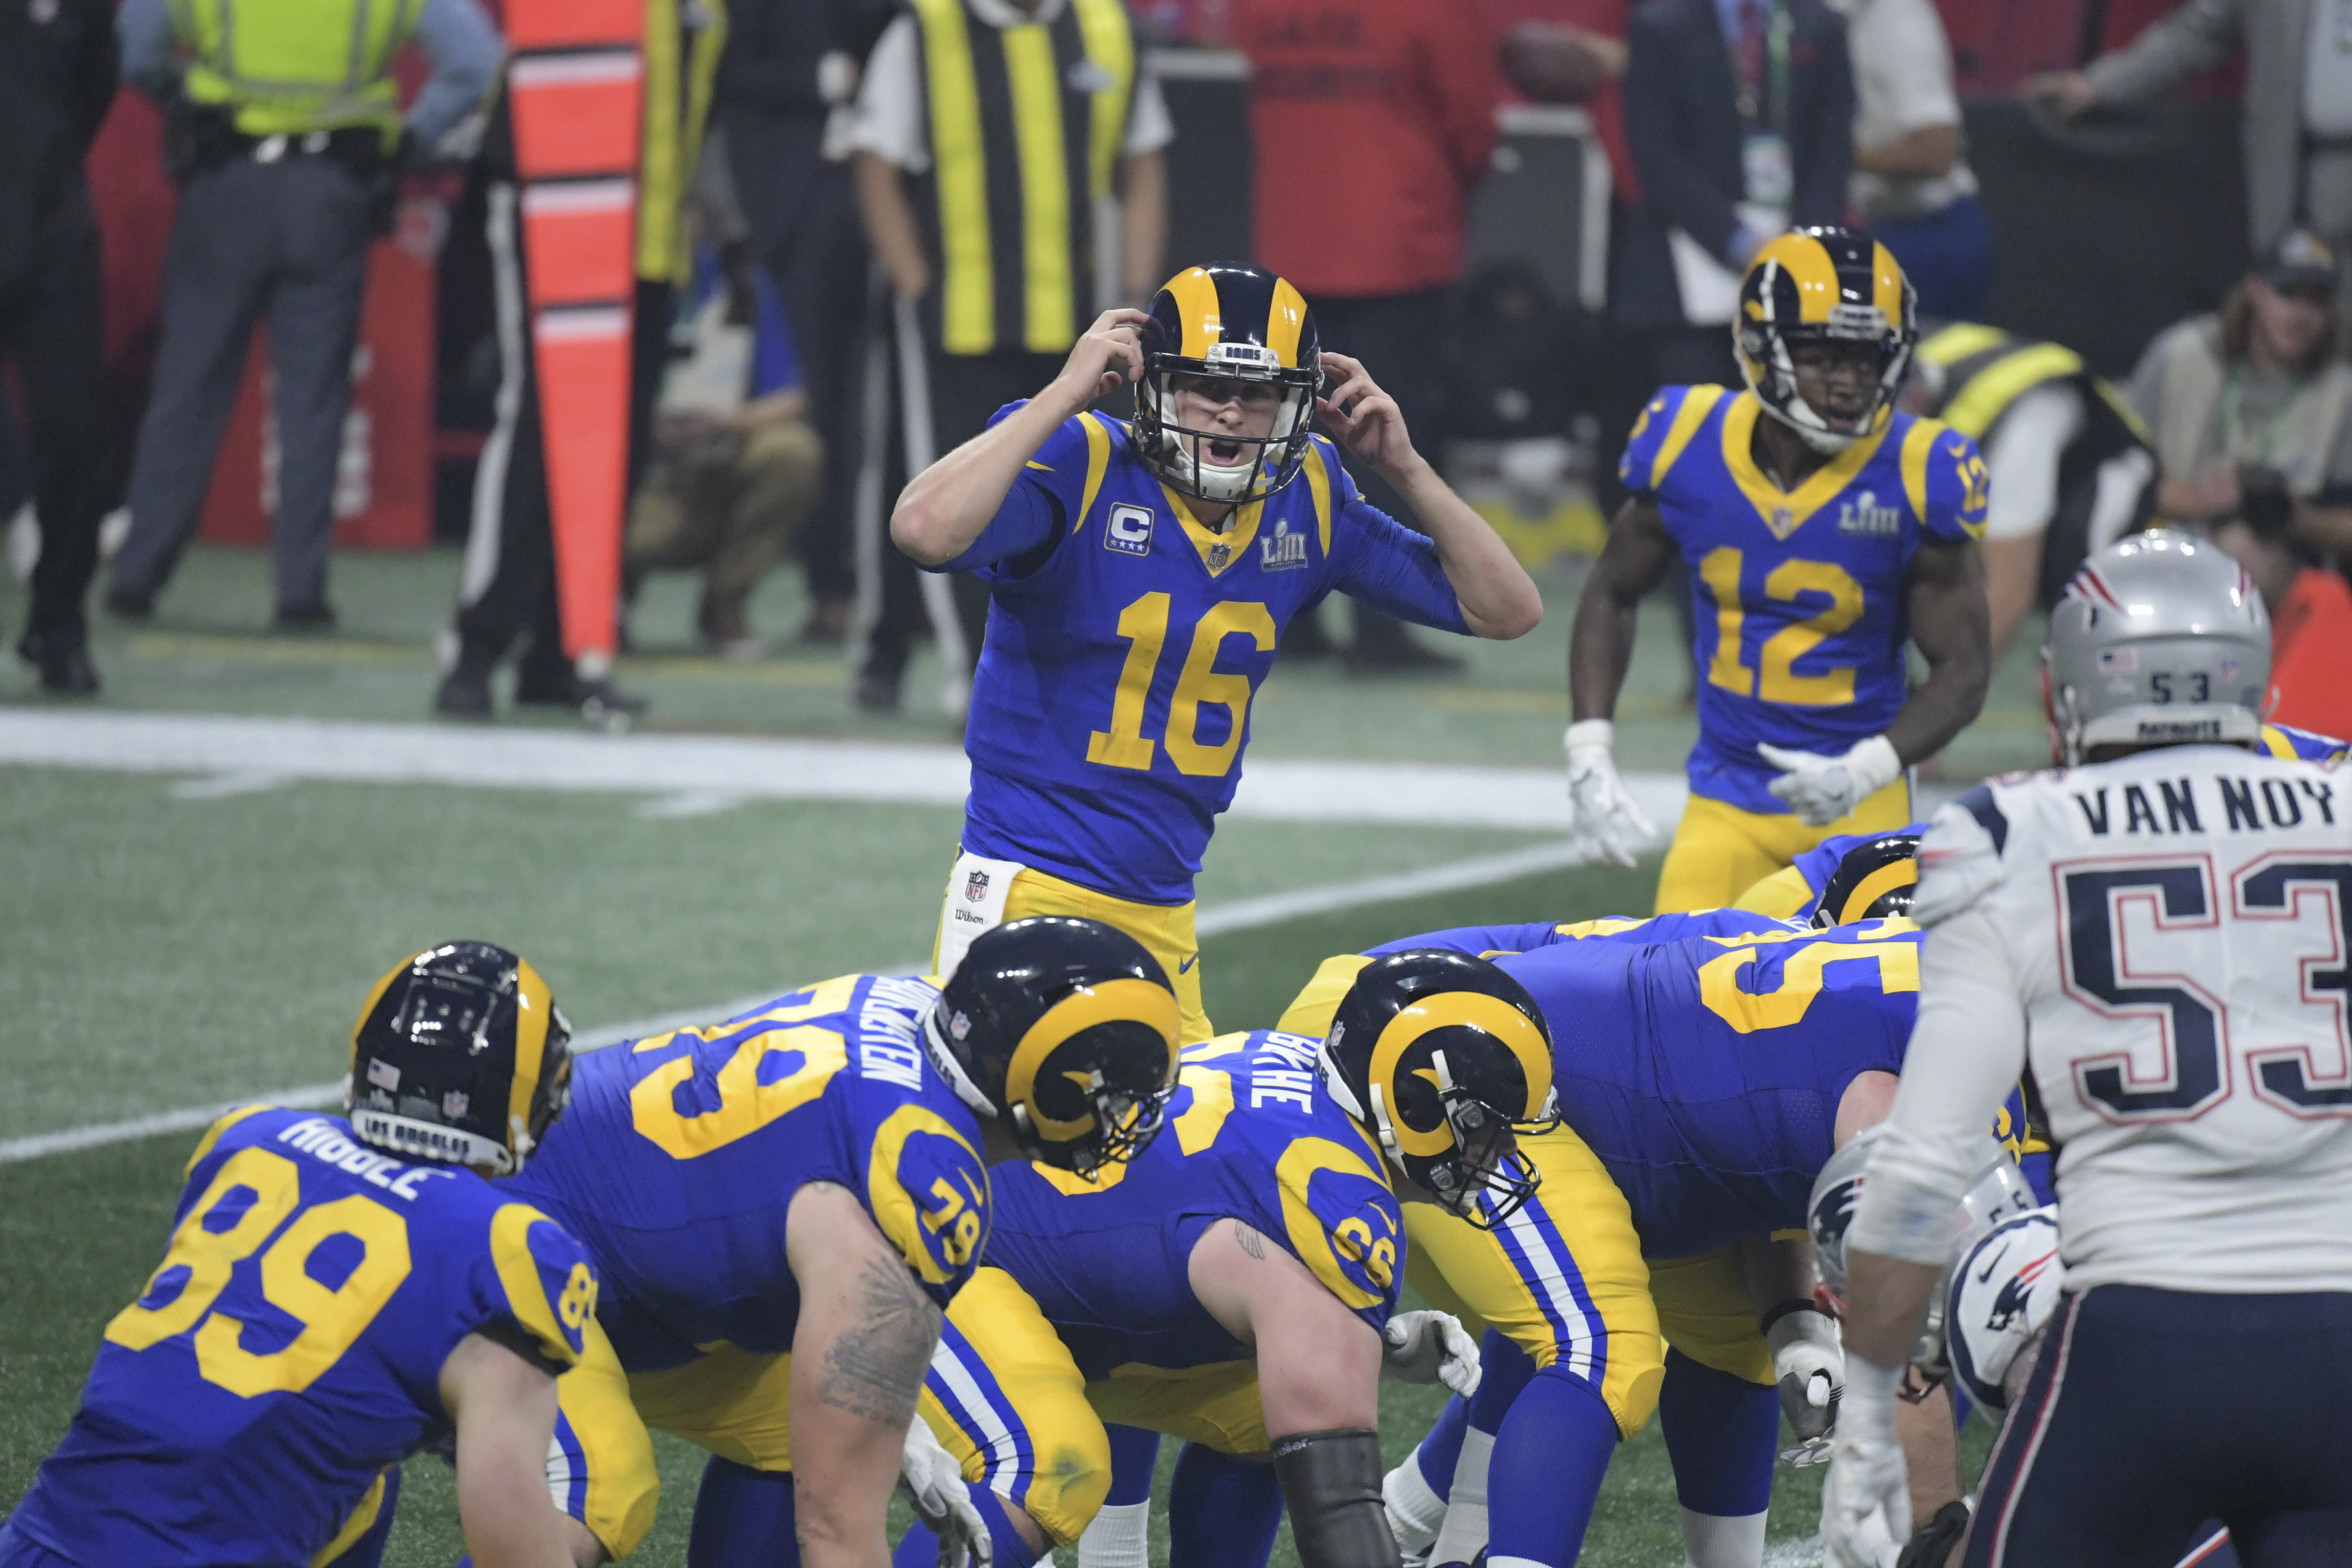 Los Angeles Rams QB Jared Goff changes a play at the line of scrimmage in Super Bowl LIII against the New England Patriots, Feb. 3, 2019.